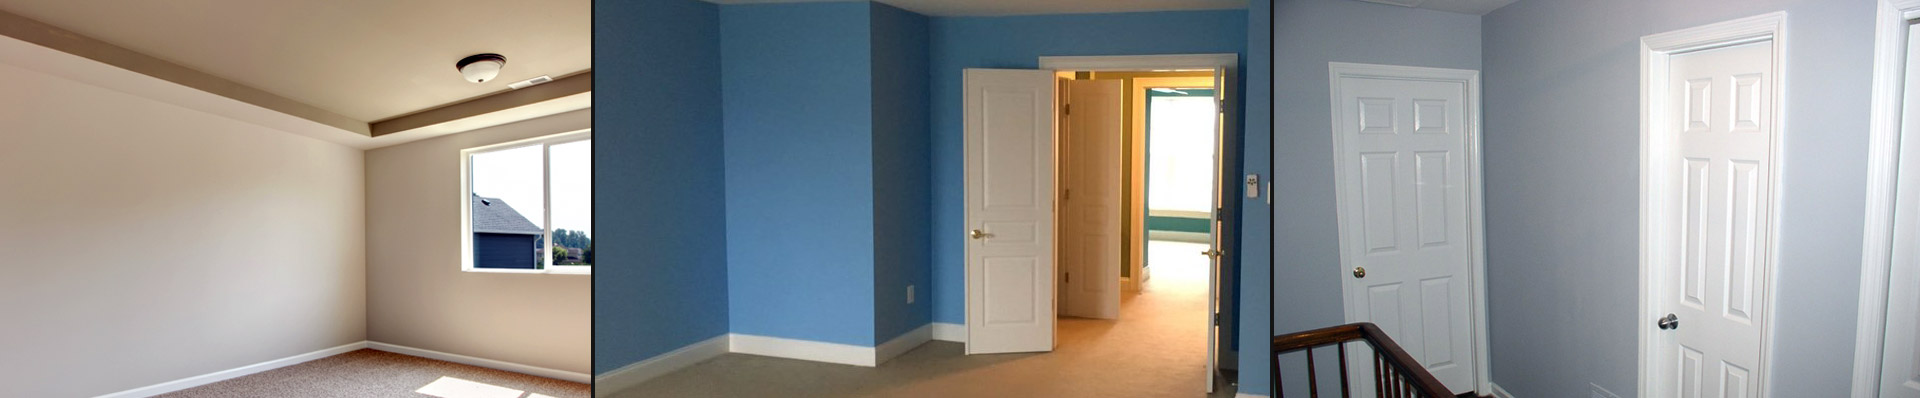 South Jersey Painting Contractors Slide Image